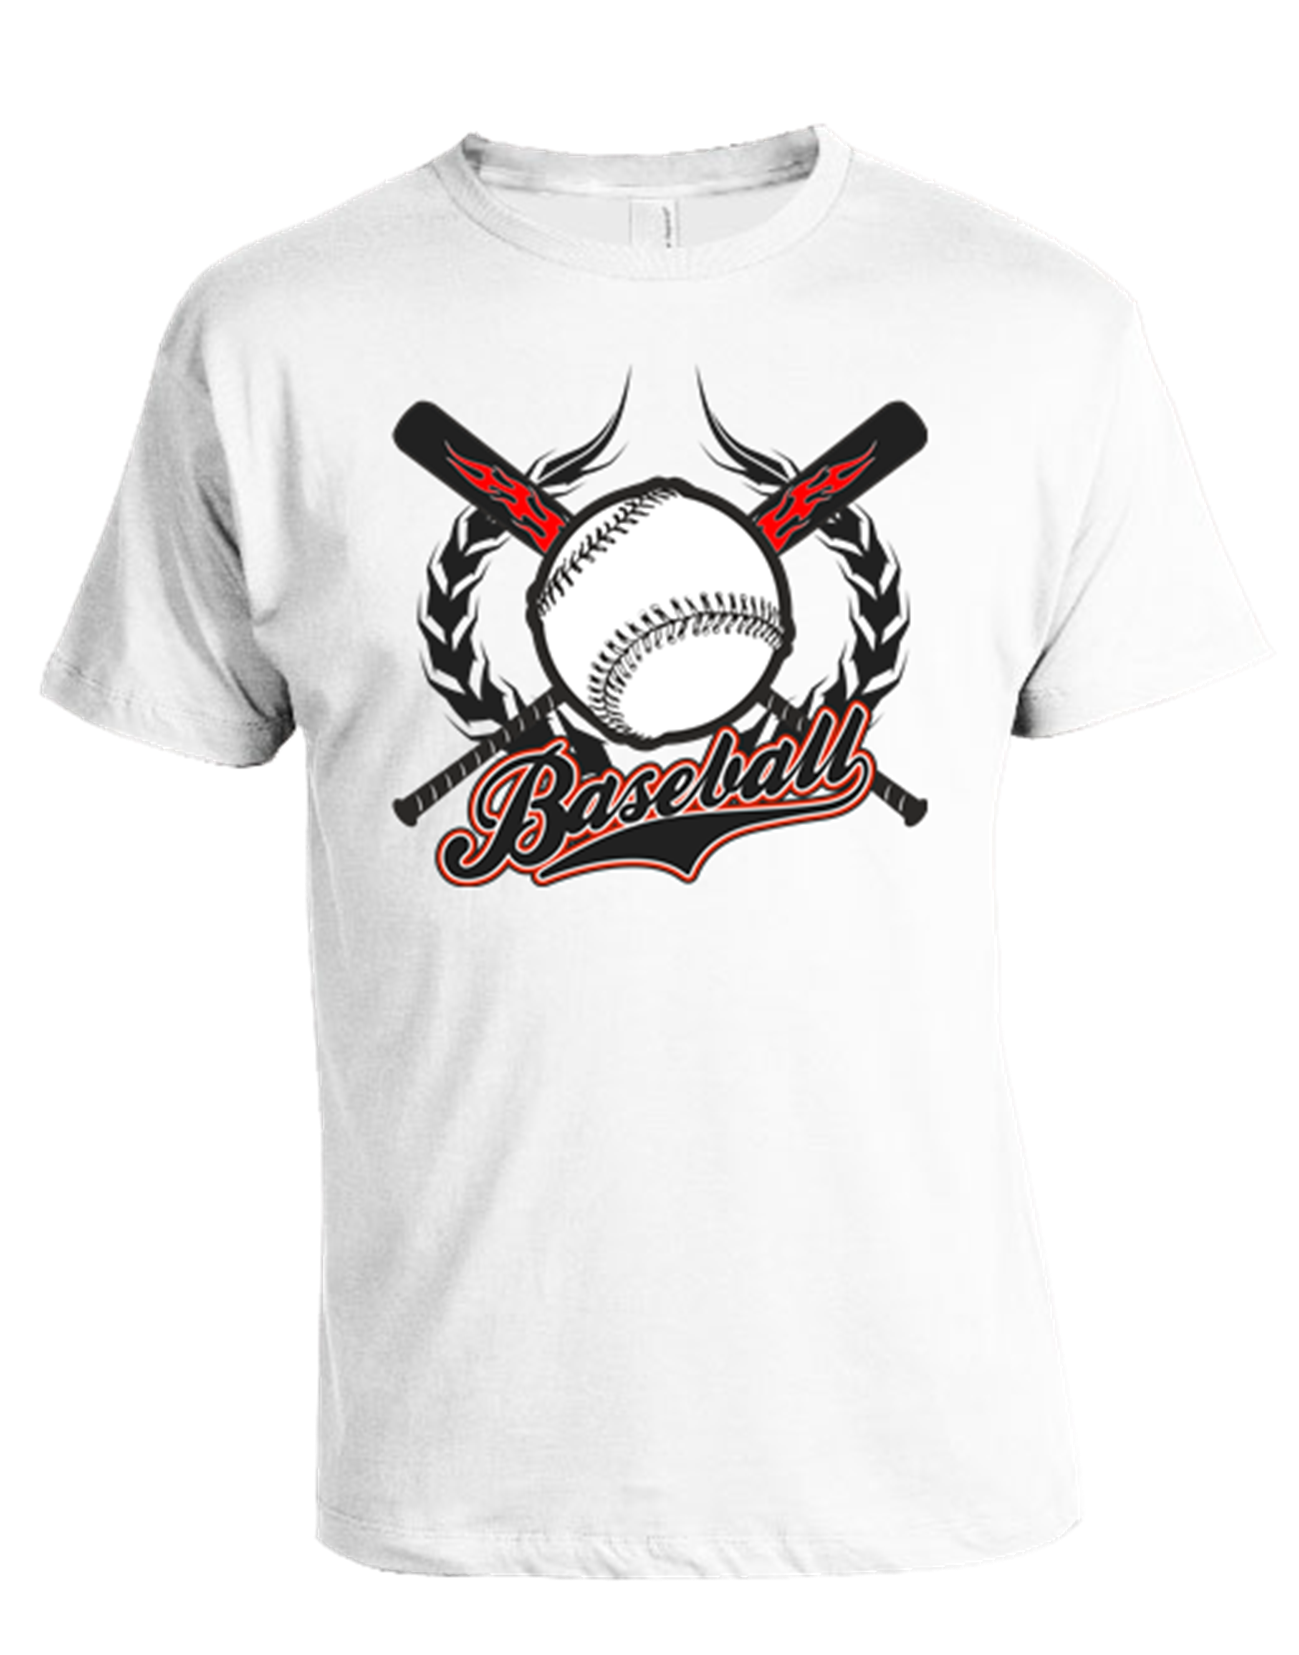 baseball design t shirt - Baseball Shirt Design Ideas